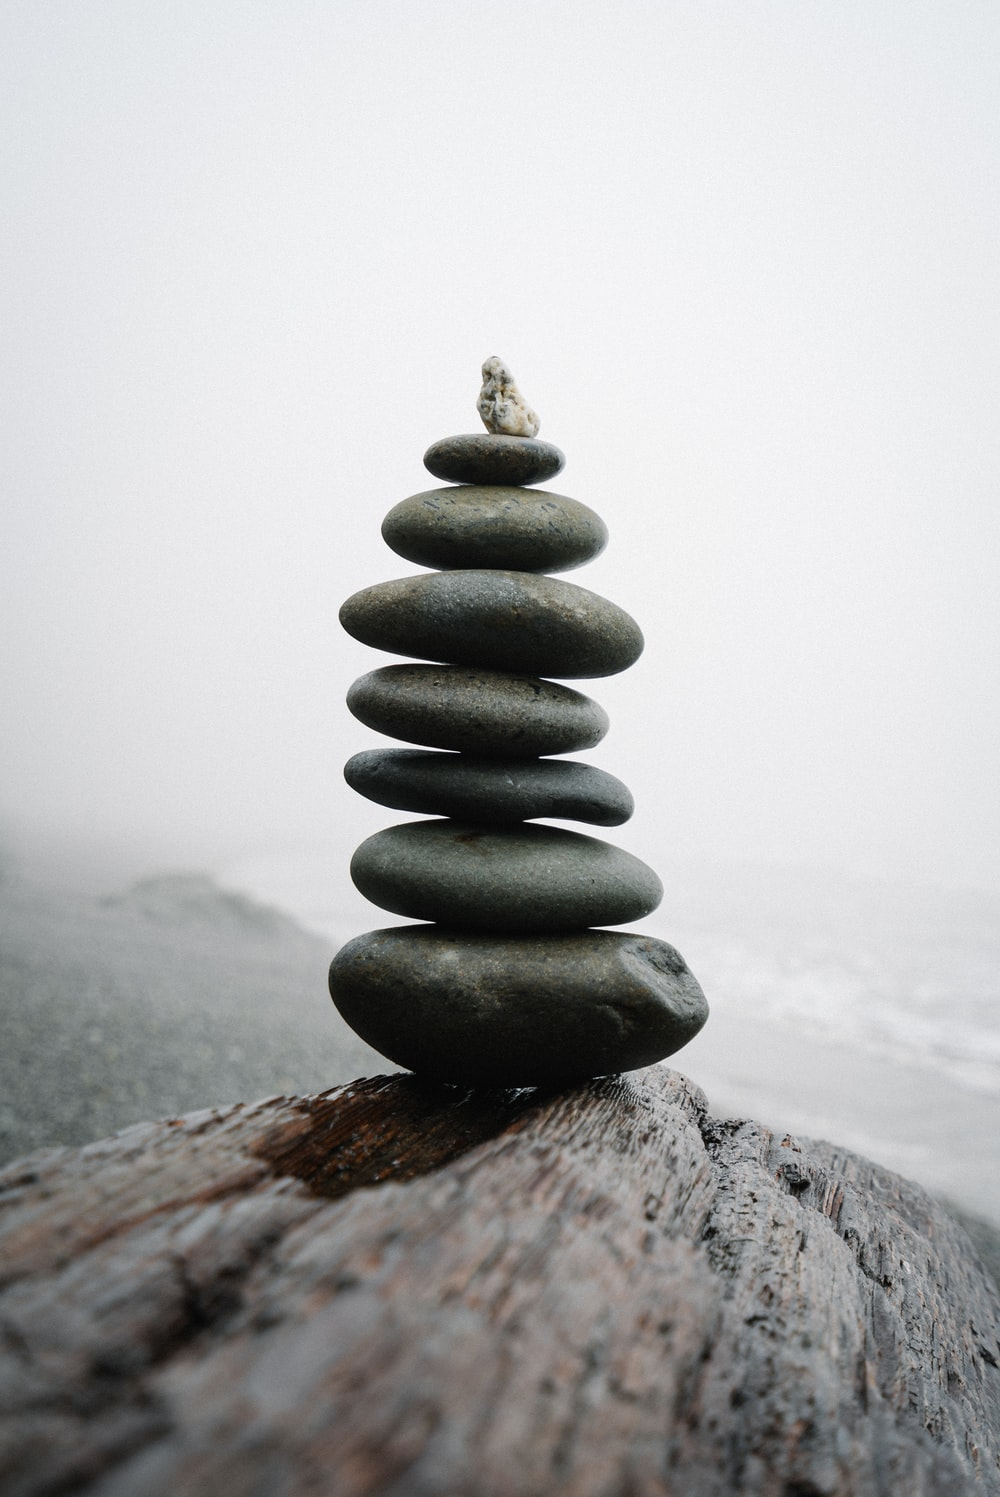 gray stone stack on gray rock